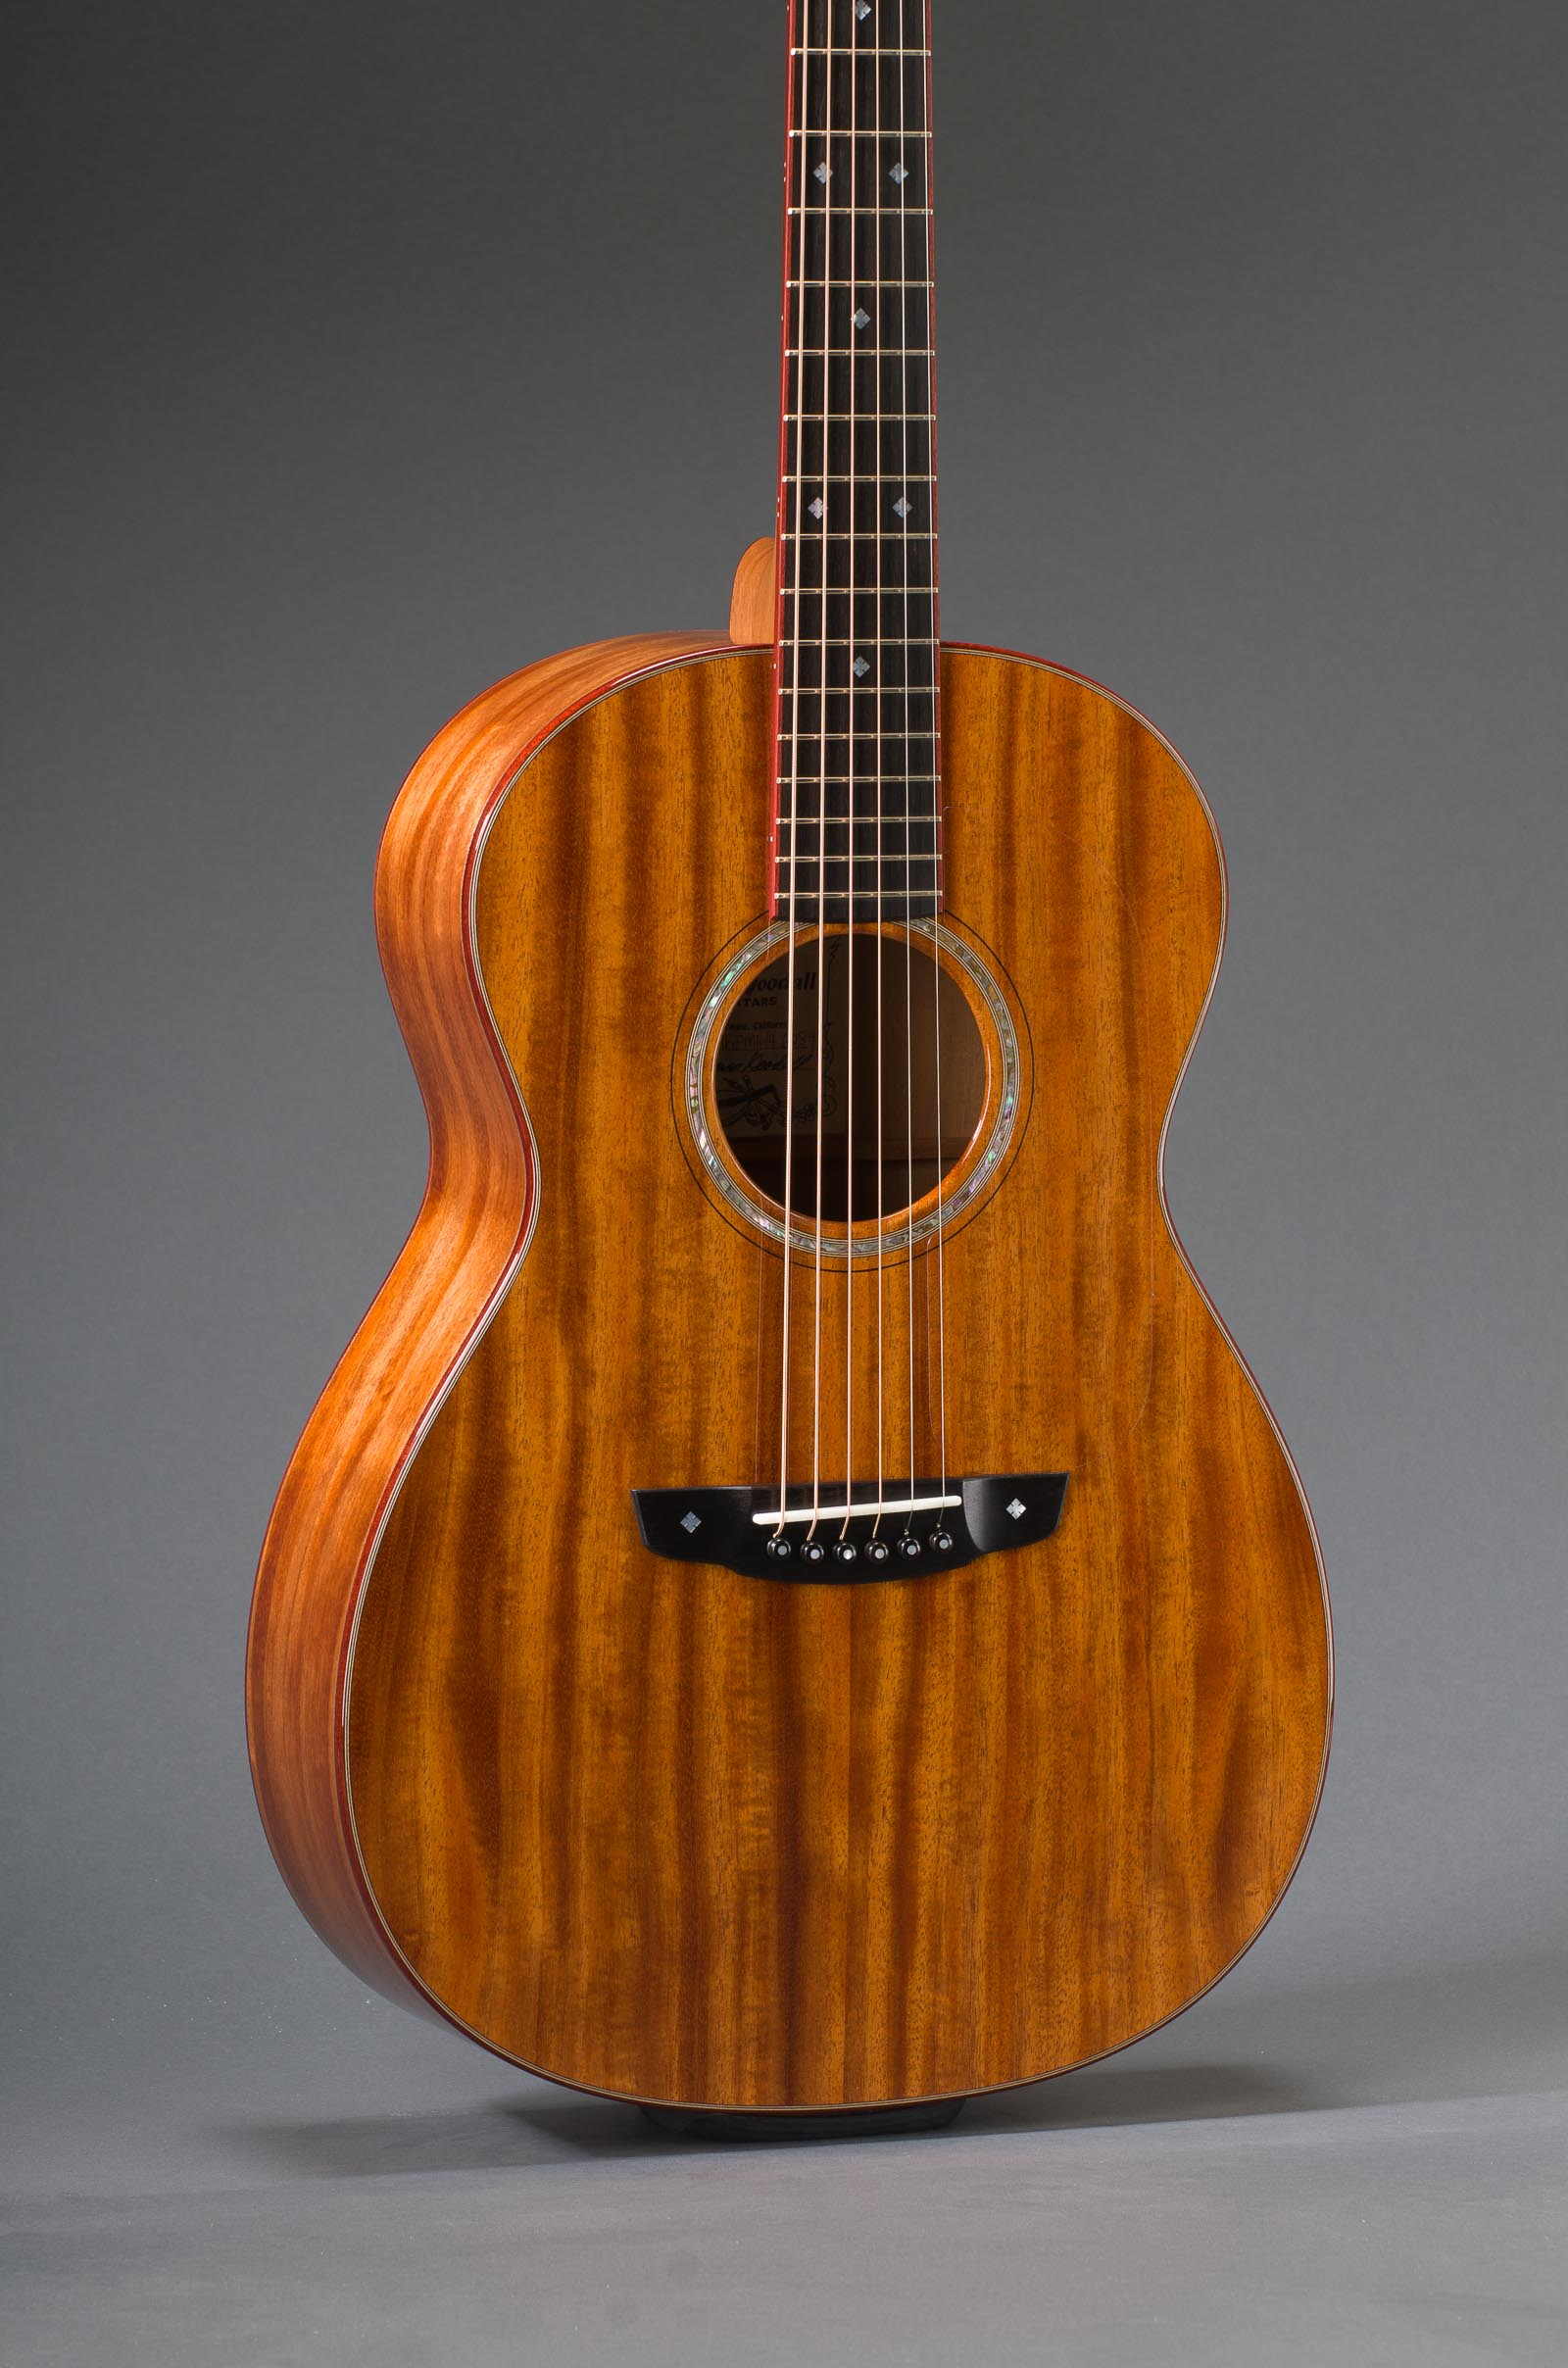 14-Fret Parlor - All Ribbon Mahogany Including Top, Fancy Abalone Rosette, & Bloodwood Binding - Including Matching Fretboard Option, Fancy Abalone Rosette